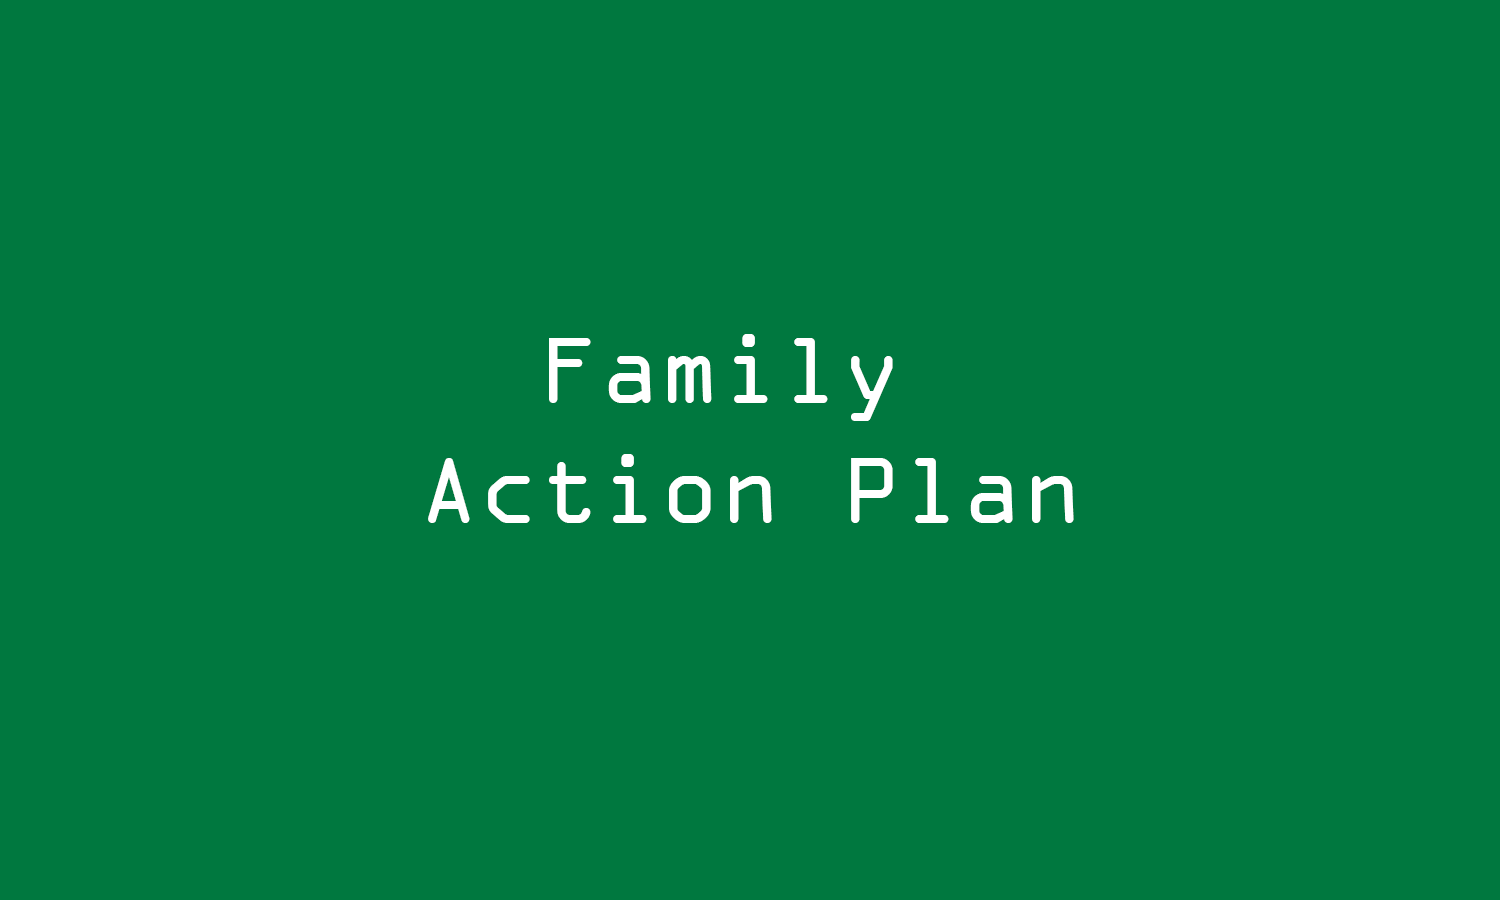 Family action plan solutions green.png